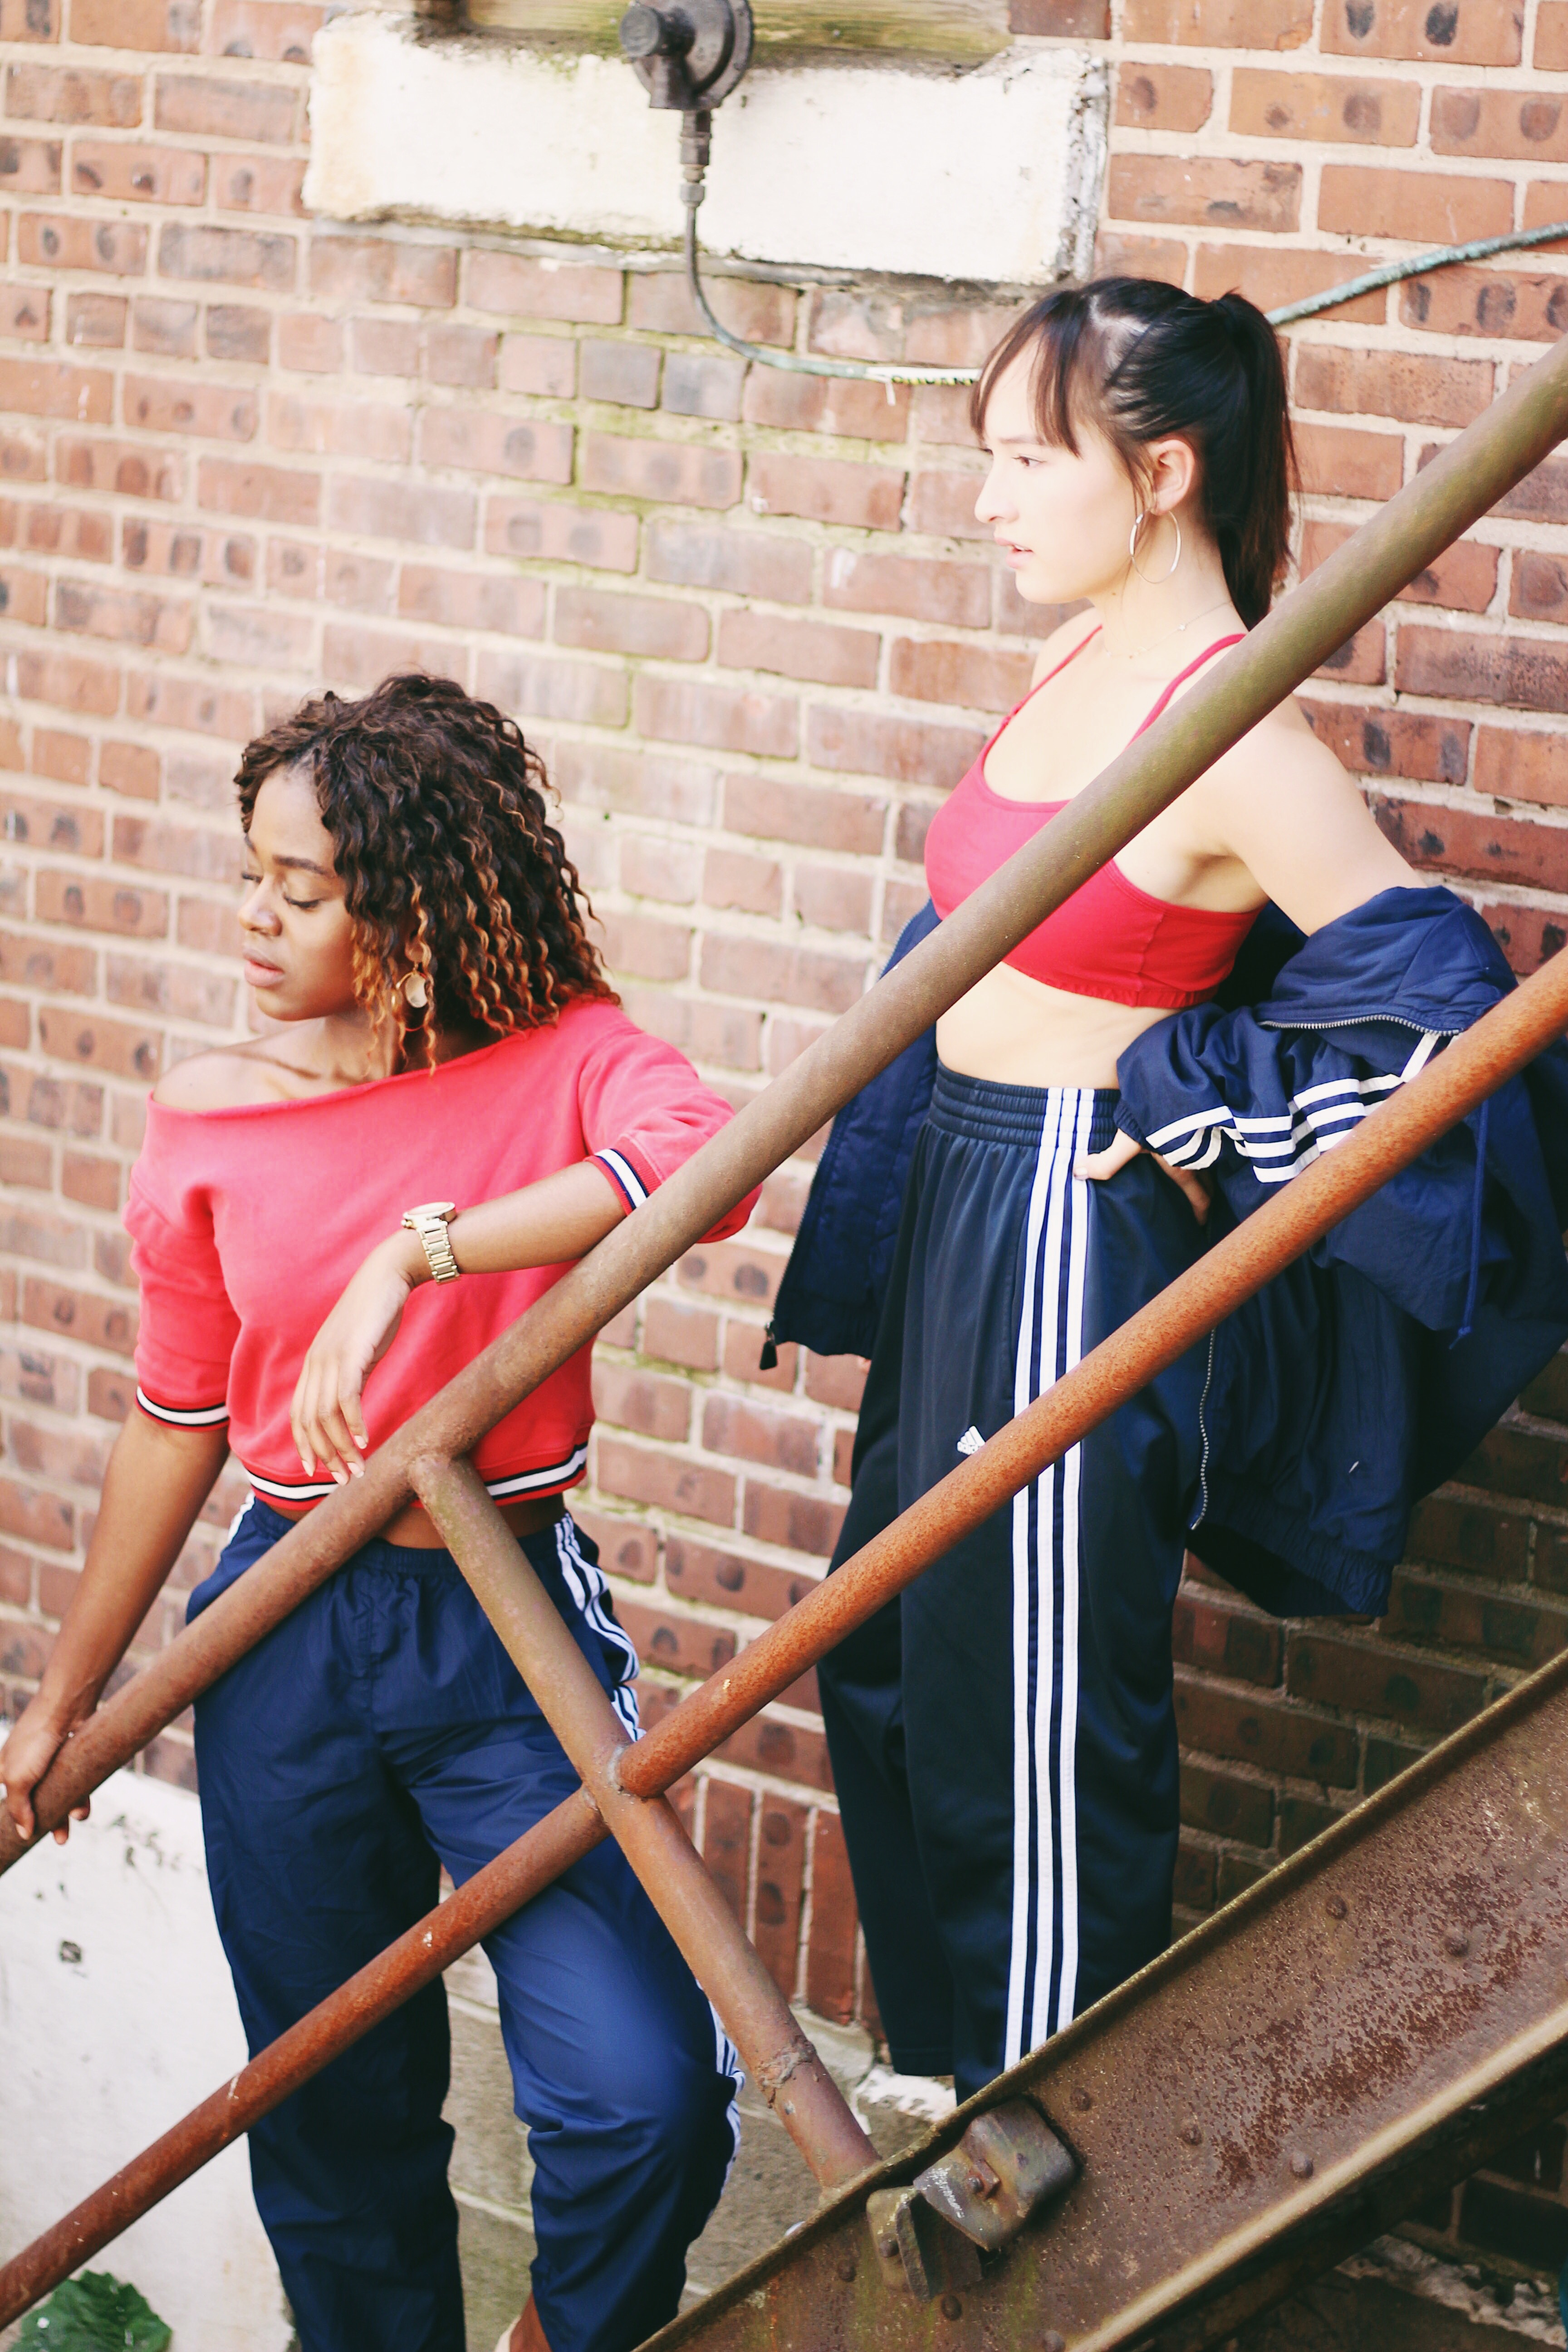 adidas jacket, adidas sweatpants, Tommy Hilfiger shoes, red sports bra, silver hoop earrings, thrift store outfit